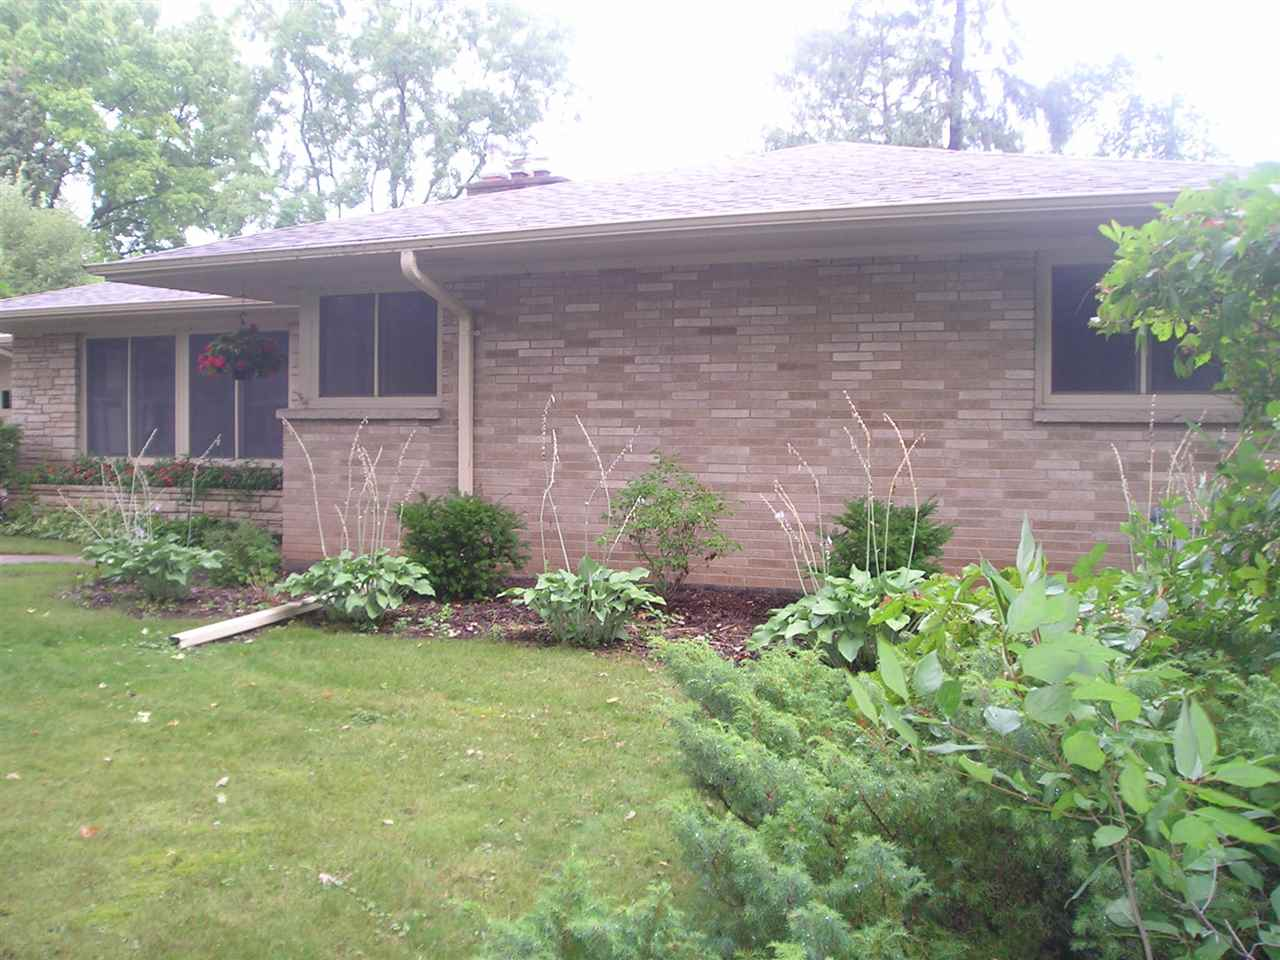 132 25TH Avenue,OSHKOSH,Wisconsin 54902-7214,3 Bedrooms Bedrooms,1.1 BathroomsBathrooms,Residential,25TH,50190646